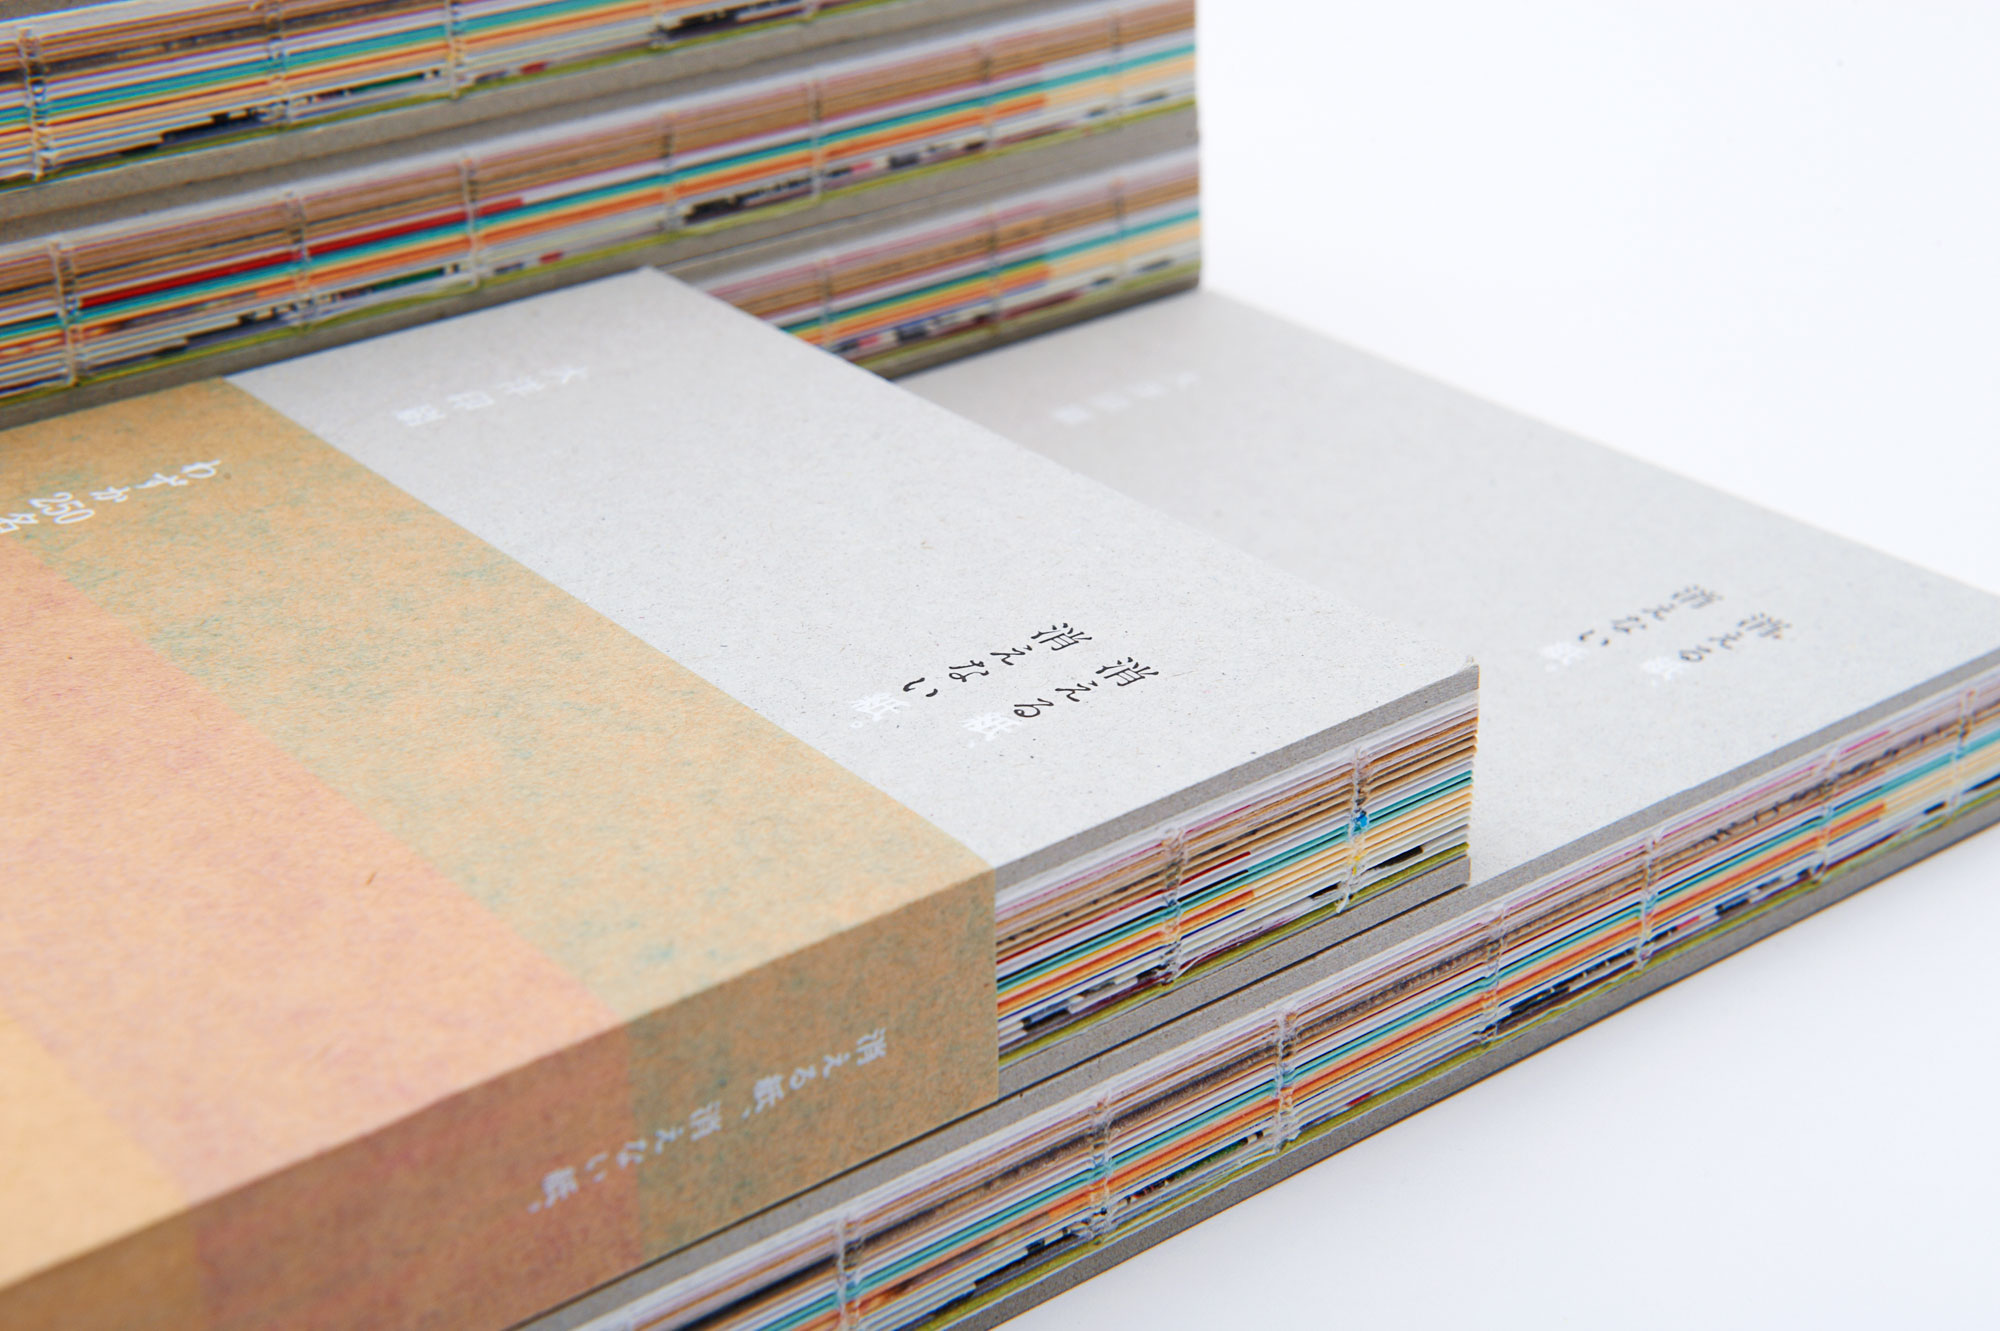 Japanese Paper Book Cover : Judging books by their covers japanese creative book